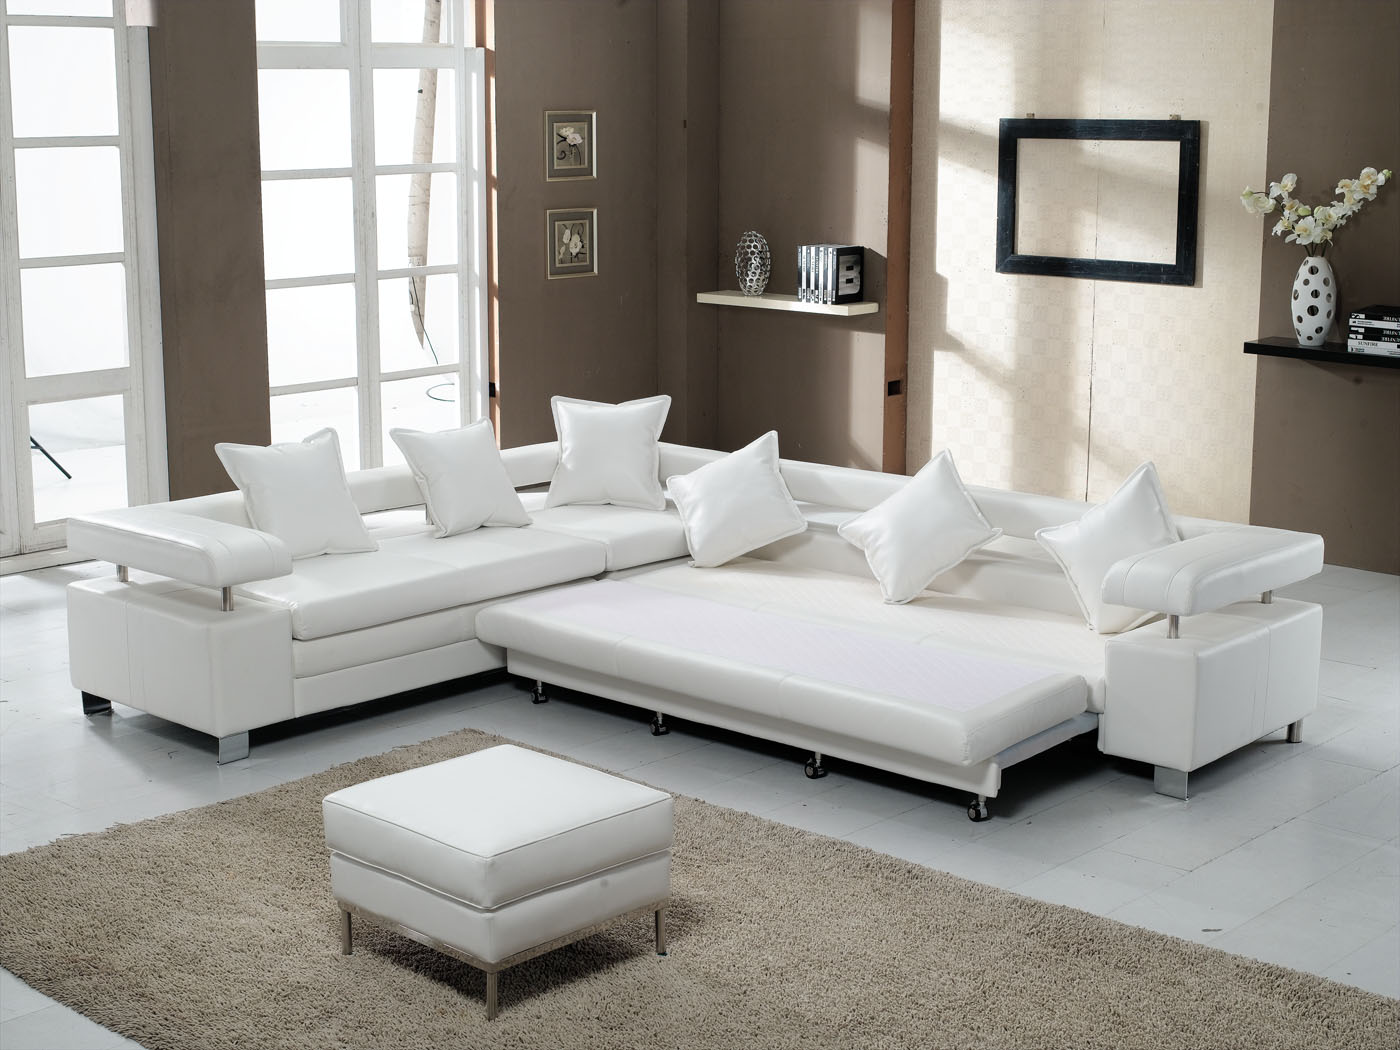 Leather Sleeper Sofa – Best Choice For Your Home